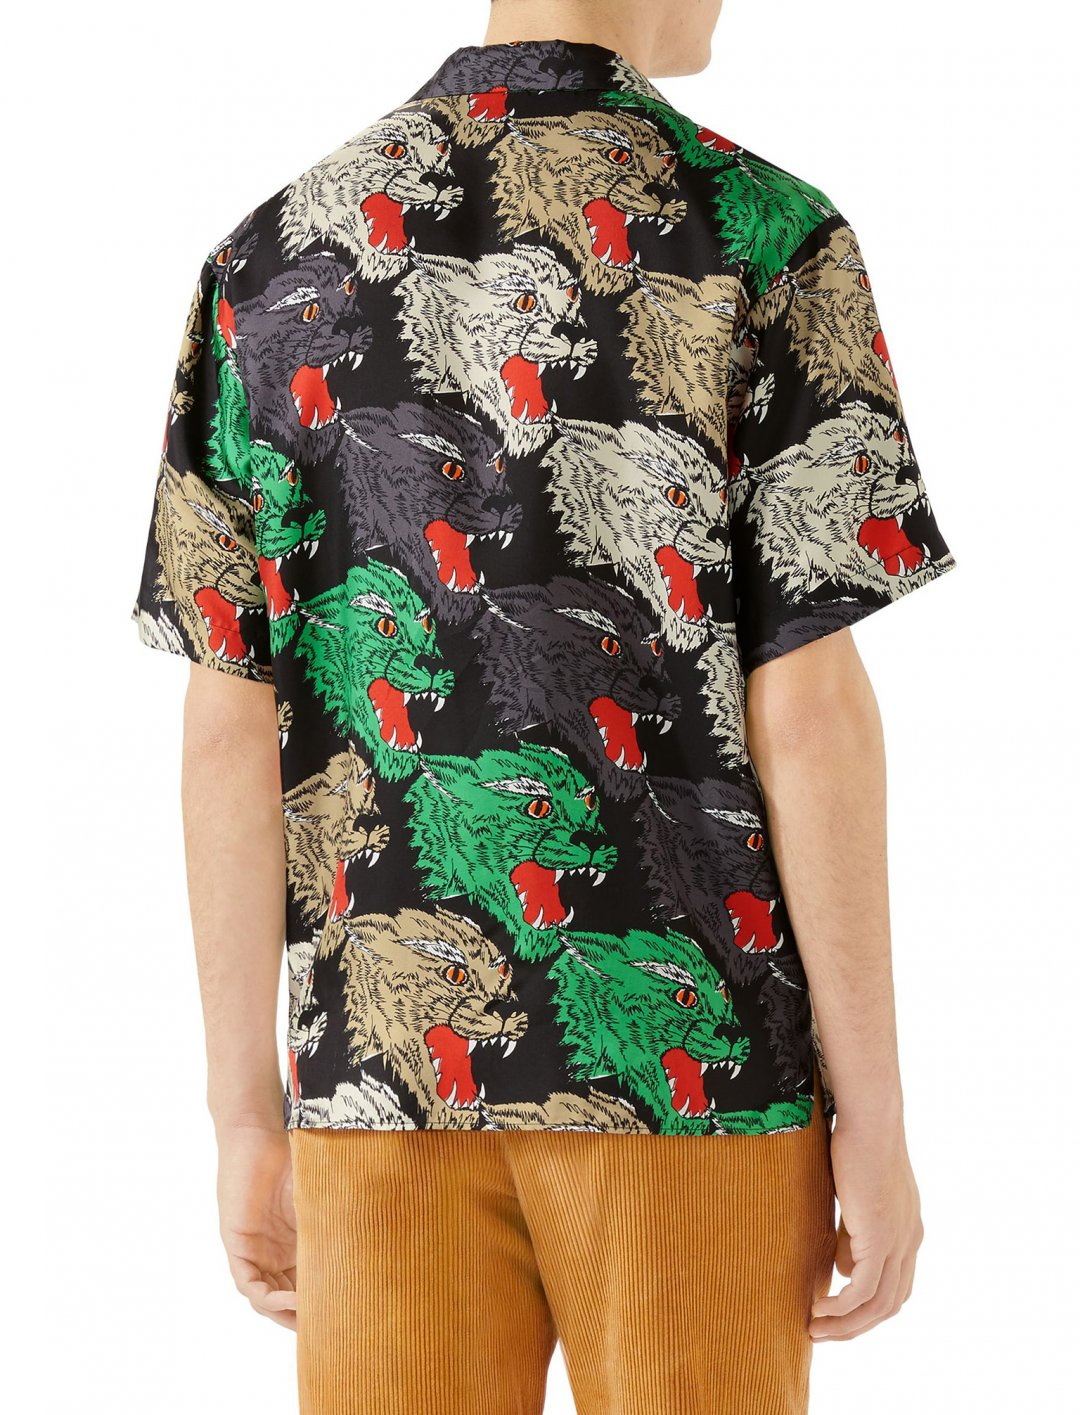 "Ty Dolla $ign's Panther Print Shirt {""id"":5,""product_section_id"":1,""name"":""Clothing"",""order"":5} Gucci"